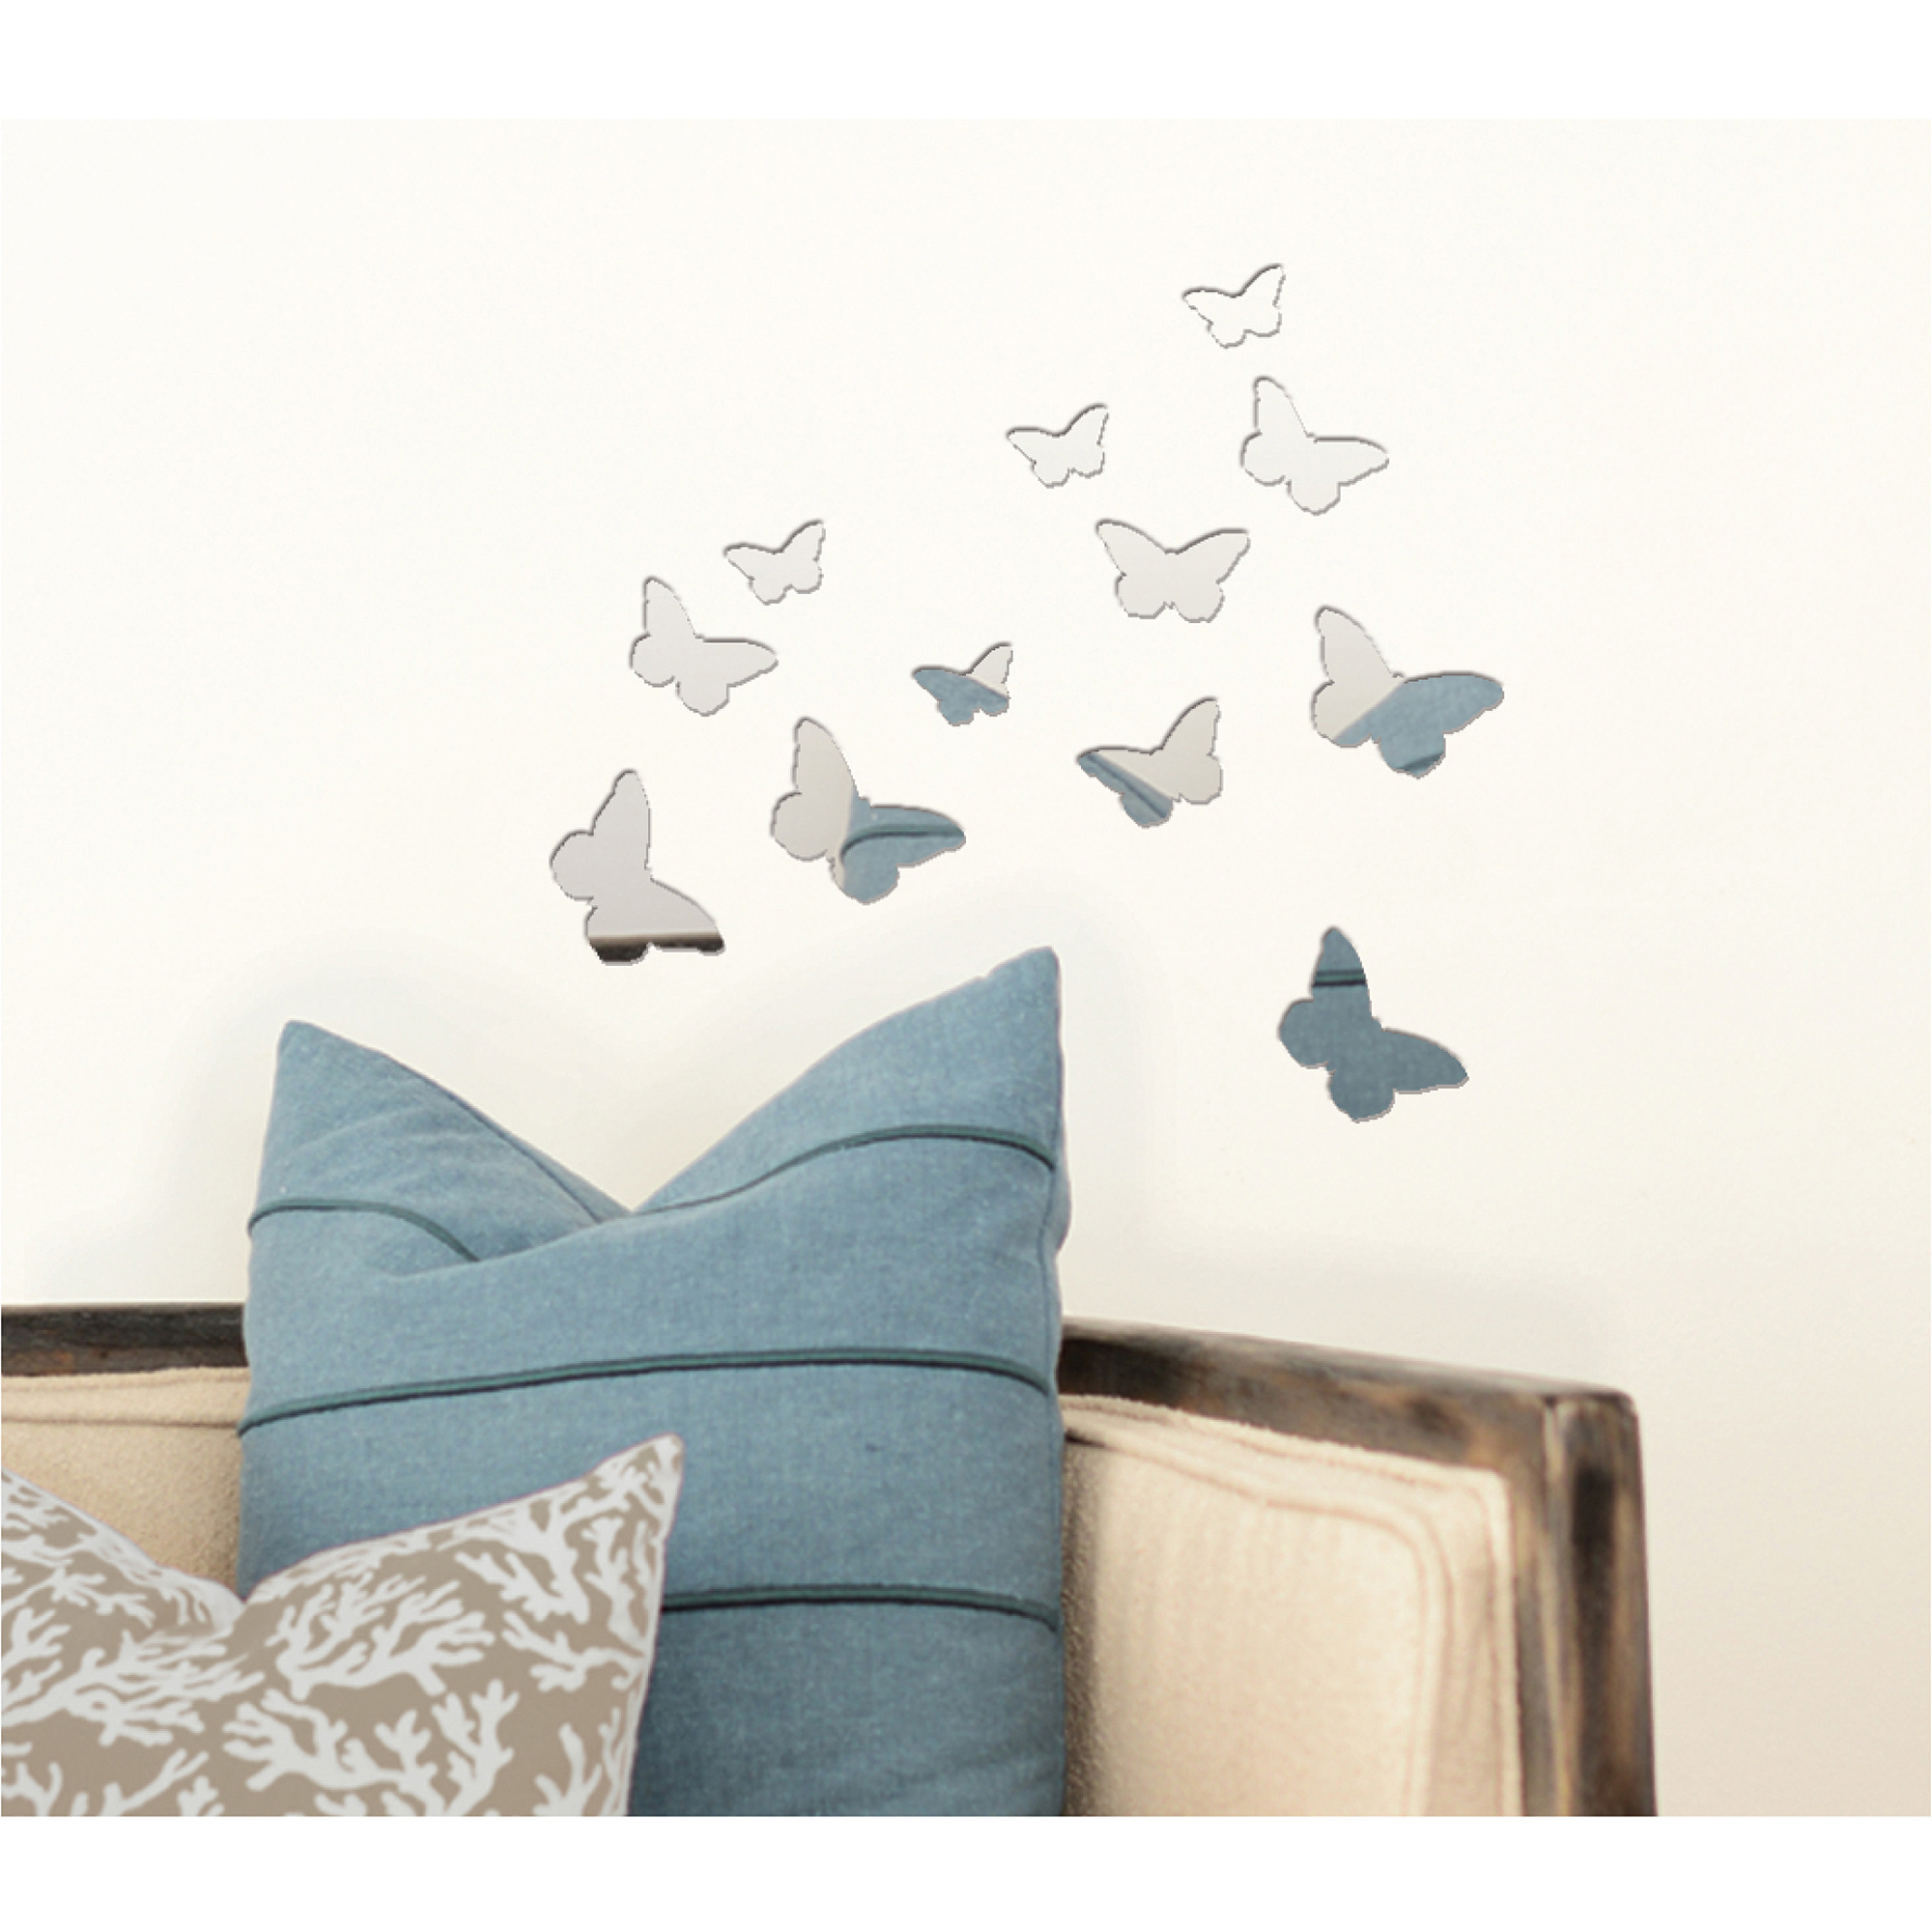 pressed petals butterfly mirror decal walmart com